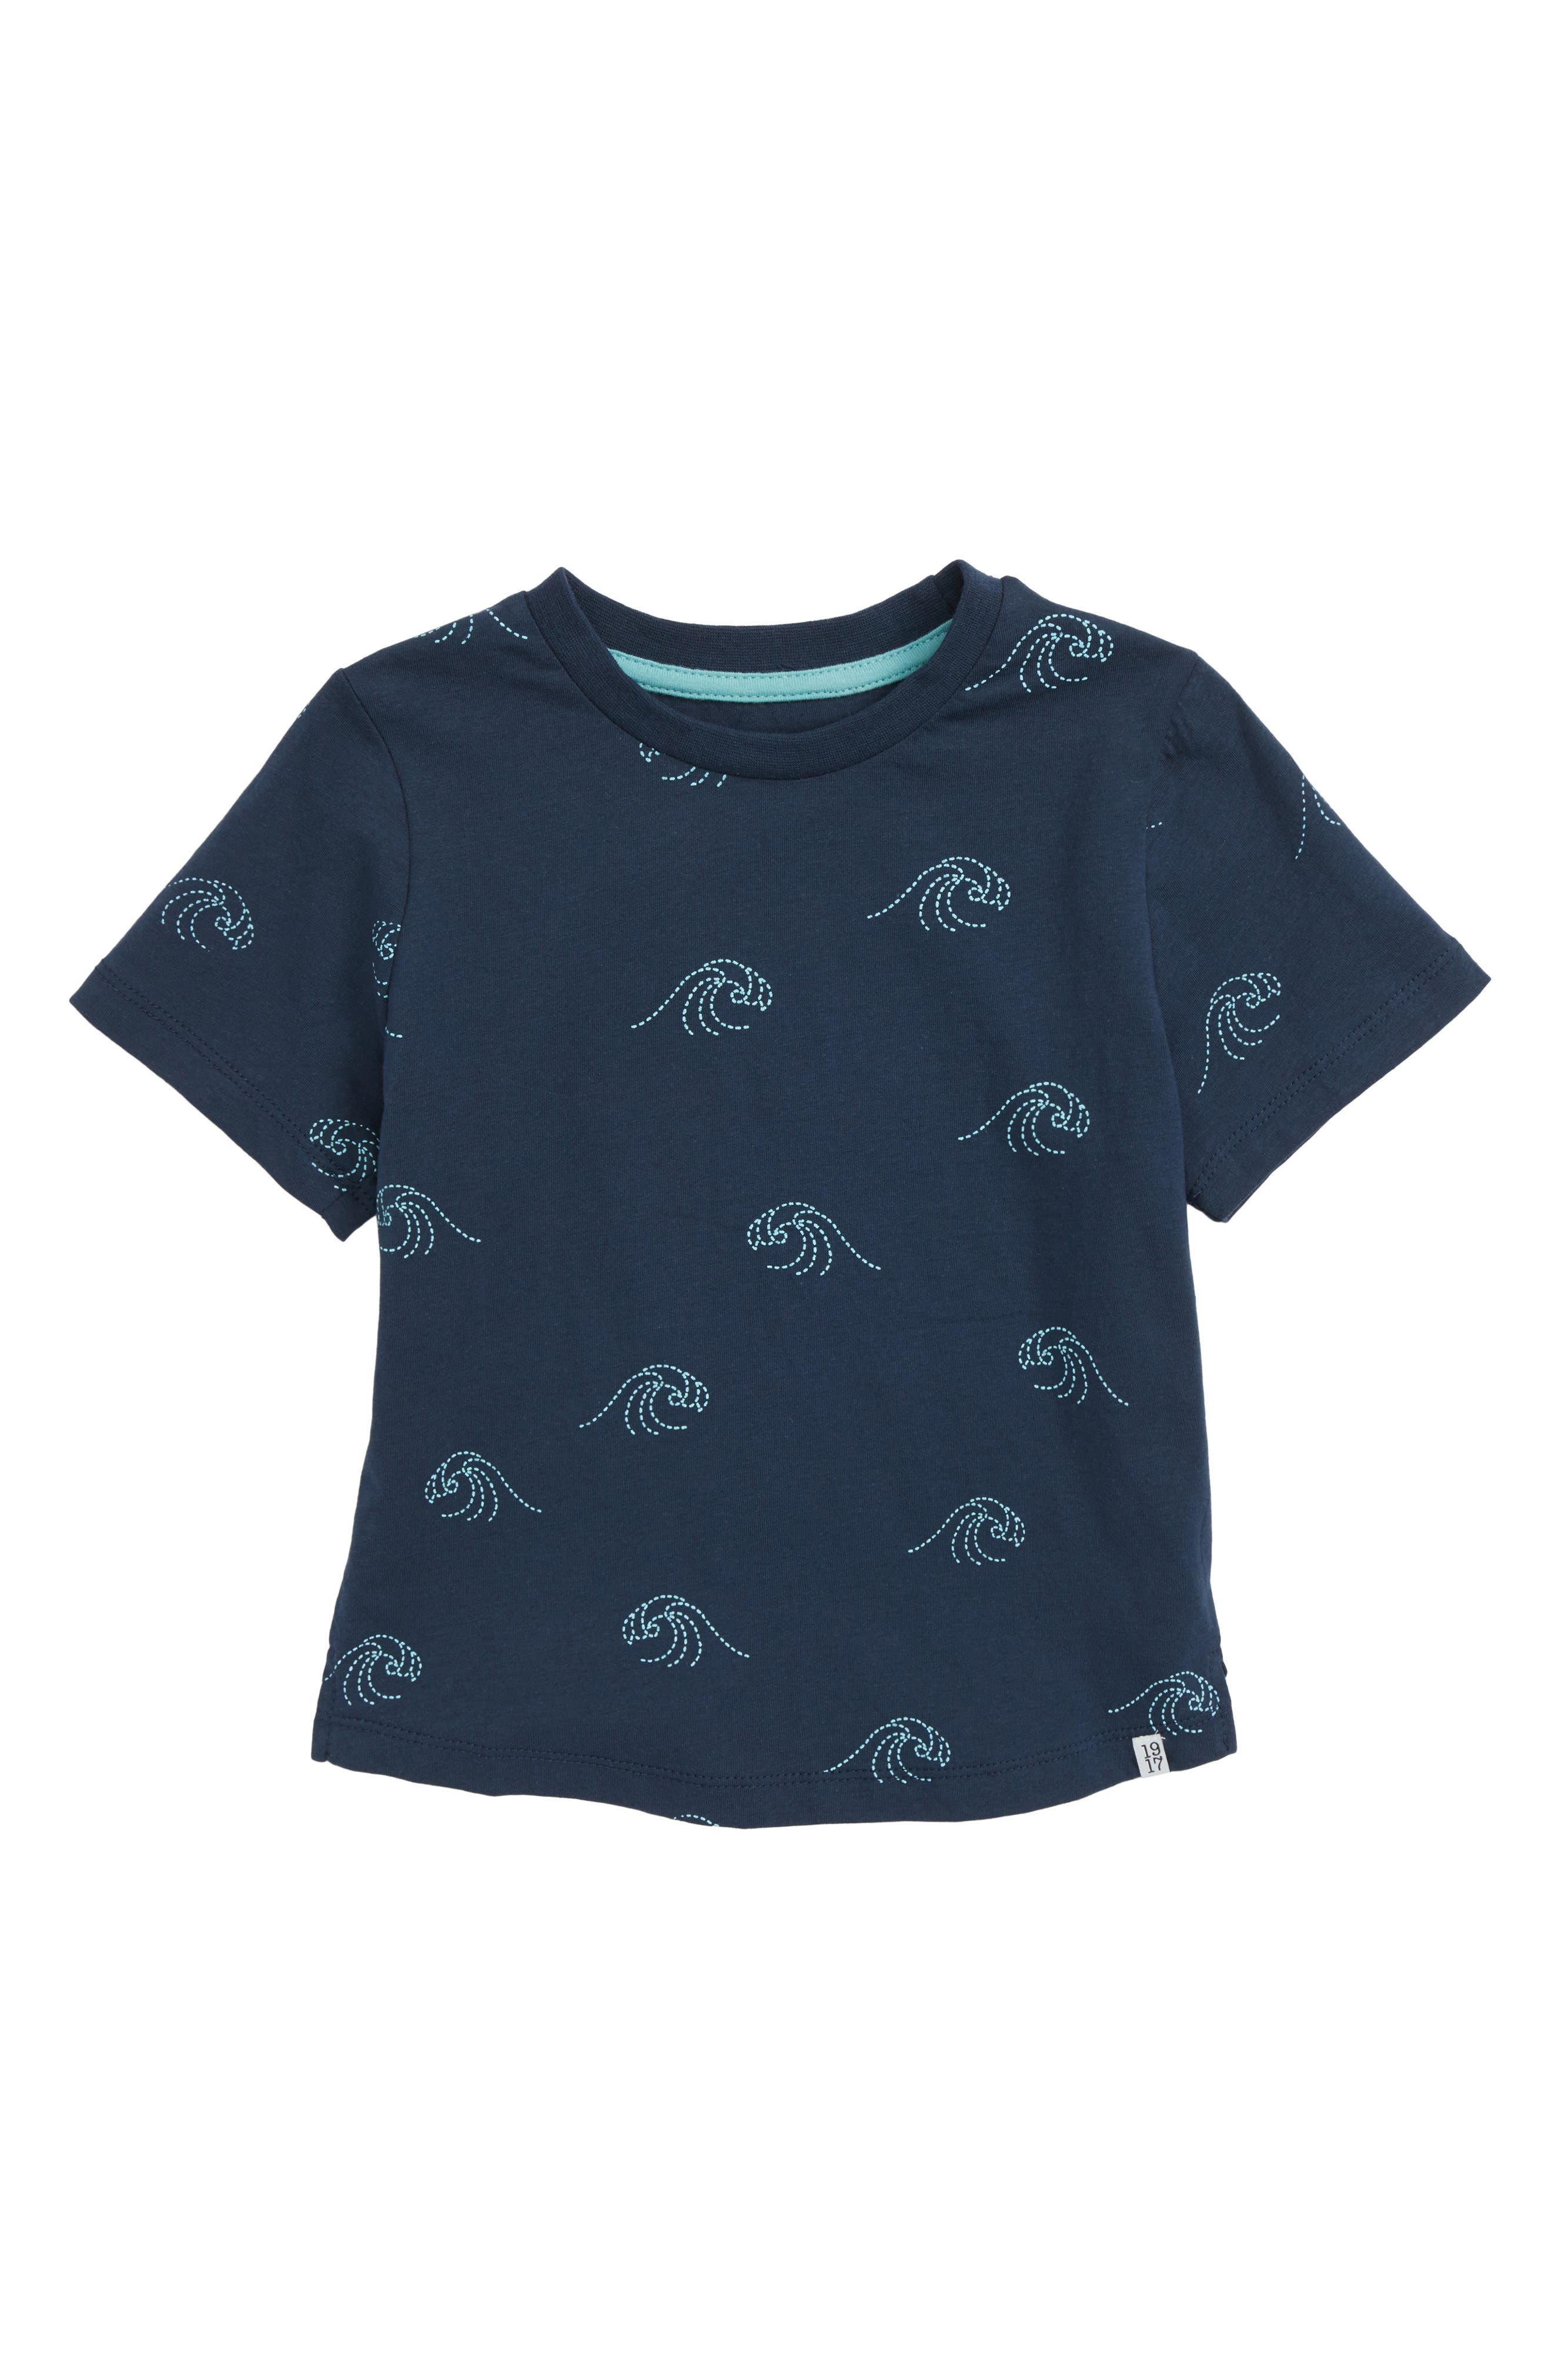 Feel Embroidered T-Shirt,                             Main thumbnail 1, color,                             Navy